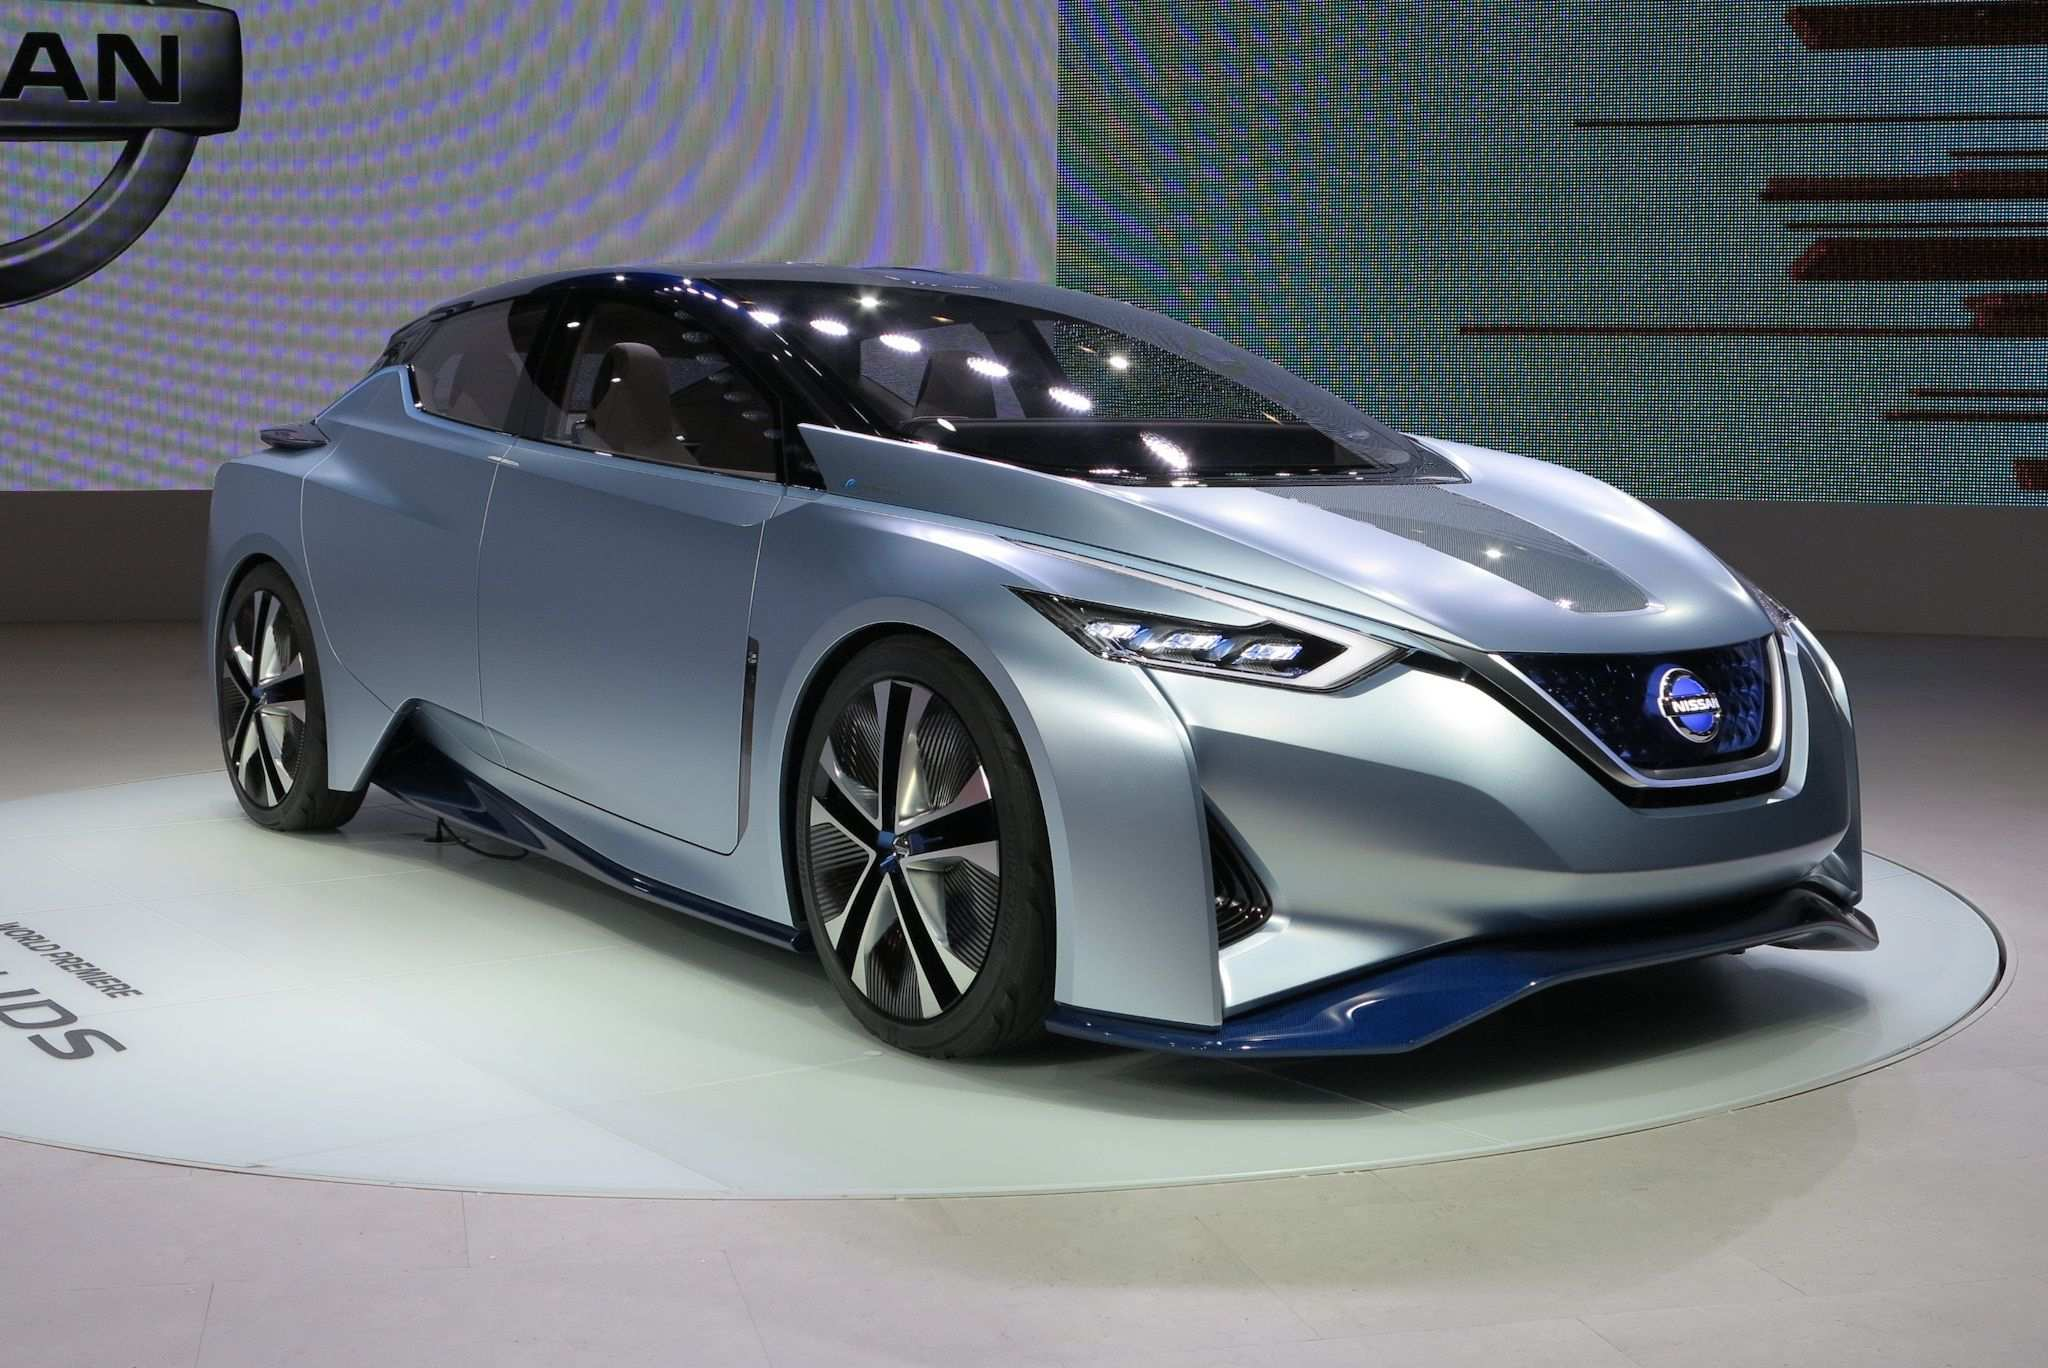 60 Concept of 2020 Nissan Leaf Exterior New Concept by 2020 Nissan Leaf Exterior